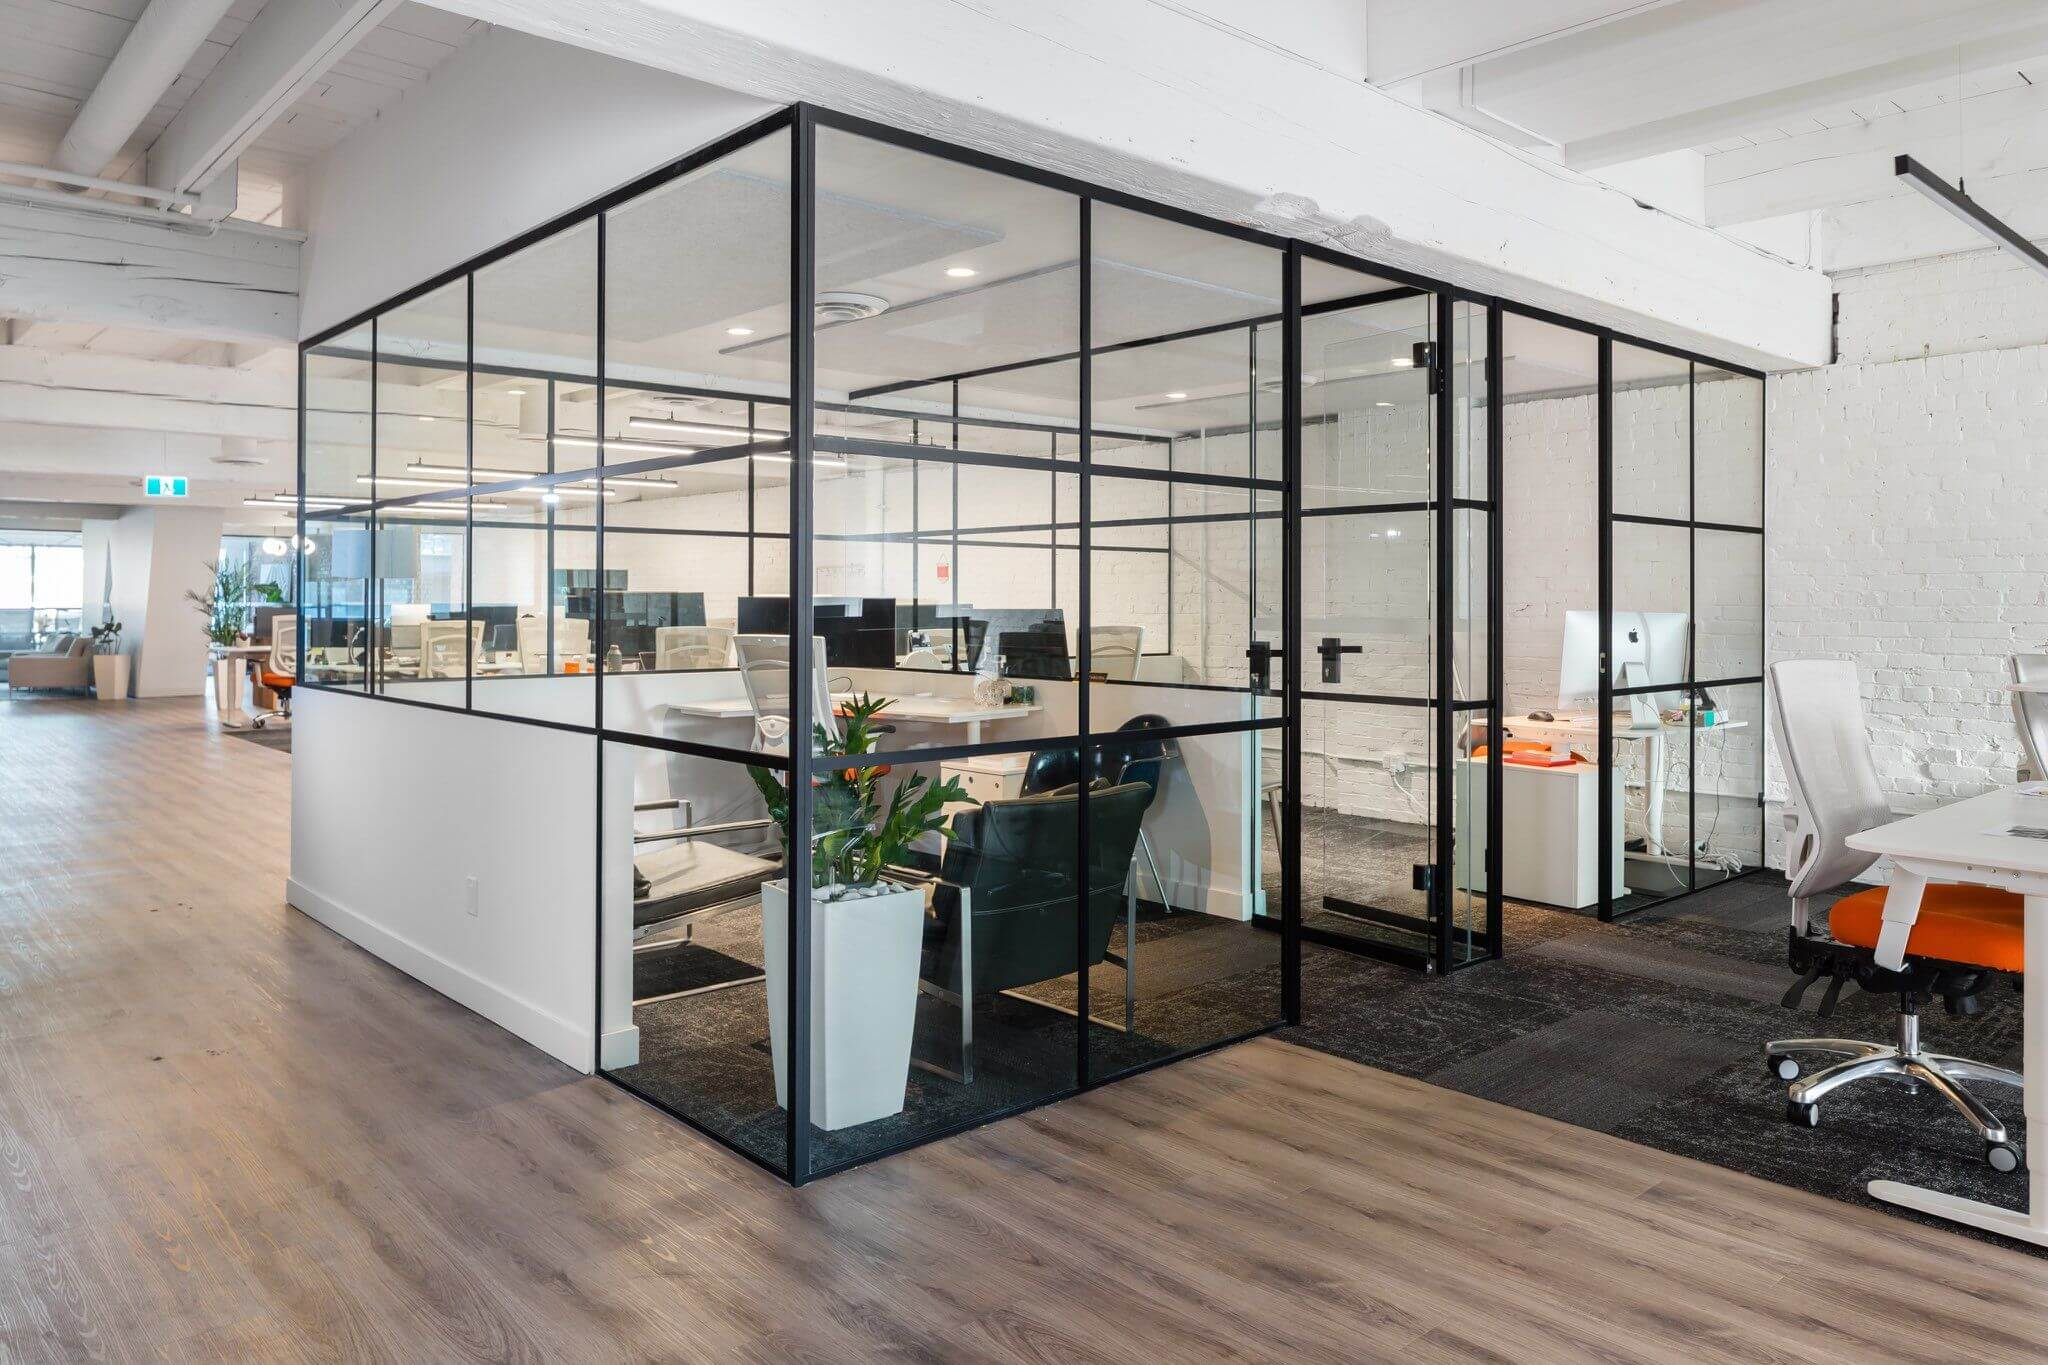 WALLENIUM_GLASS WALLS_TK_OFFICE PARTITIONS_2